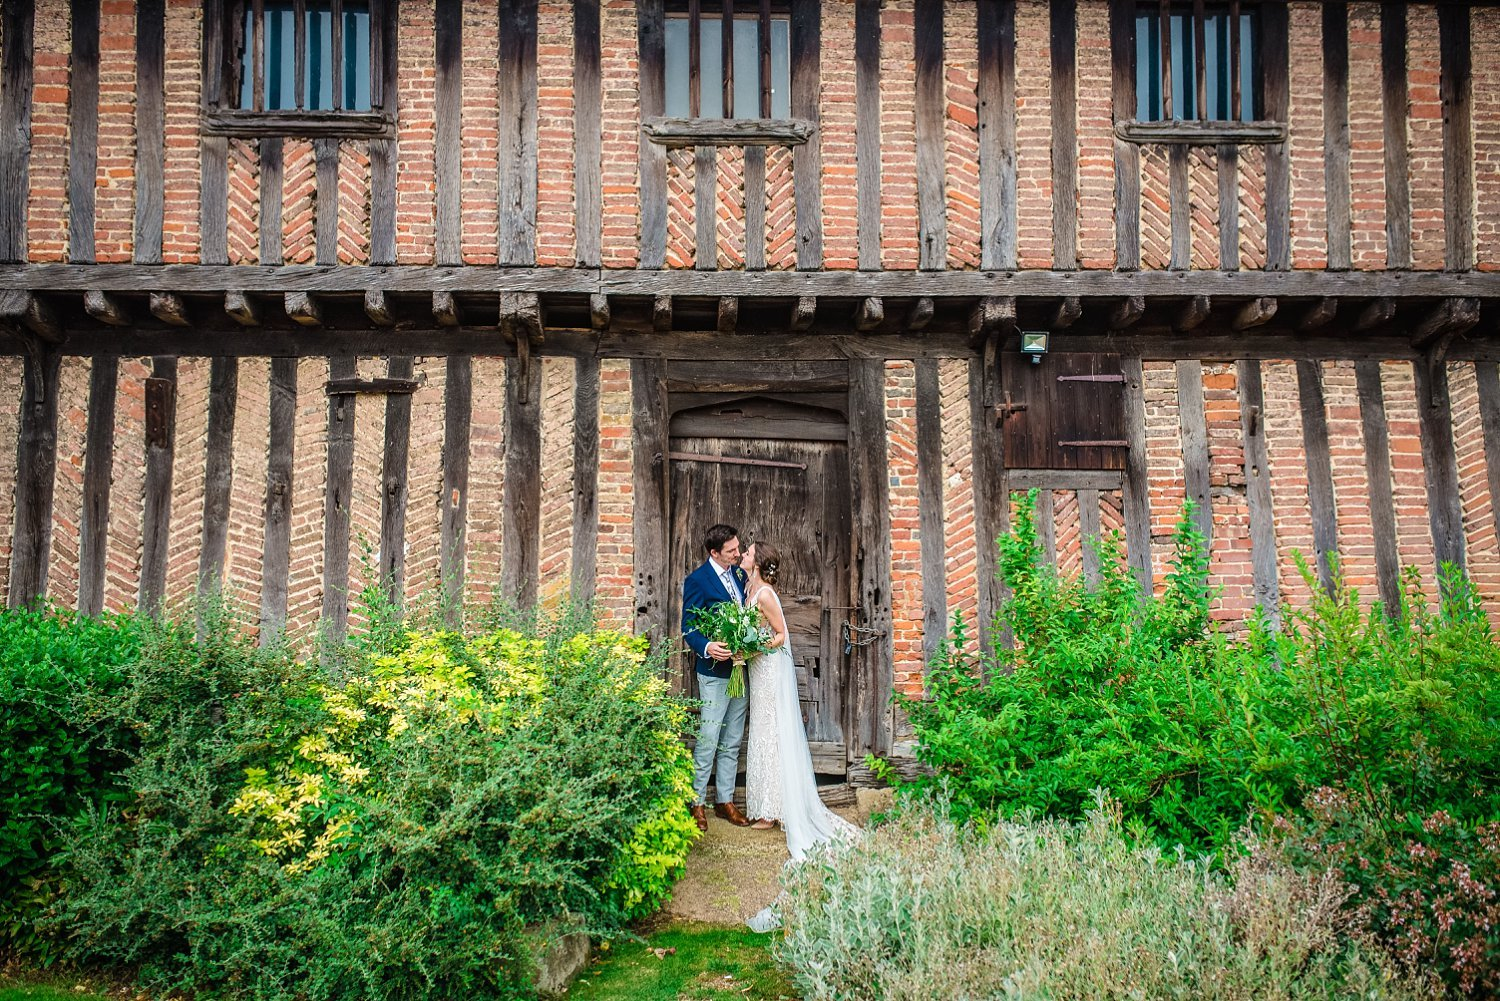 Colville Hall Weding Photographer